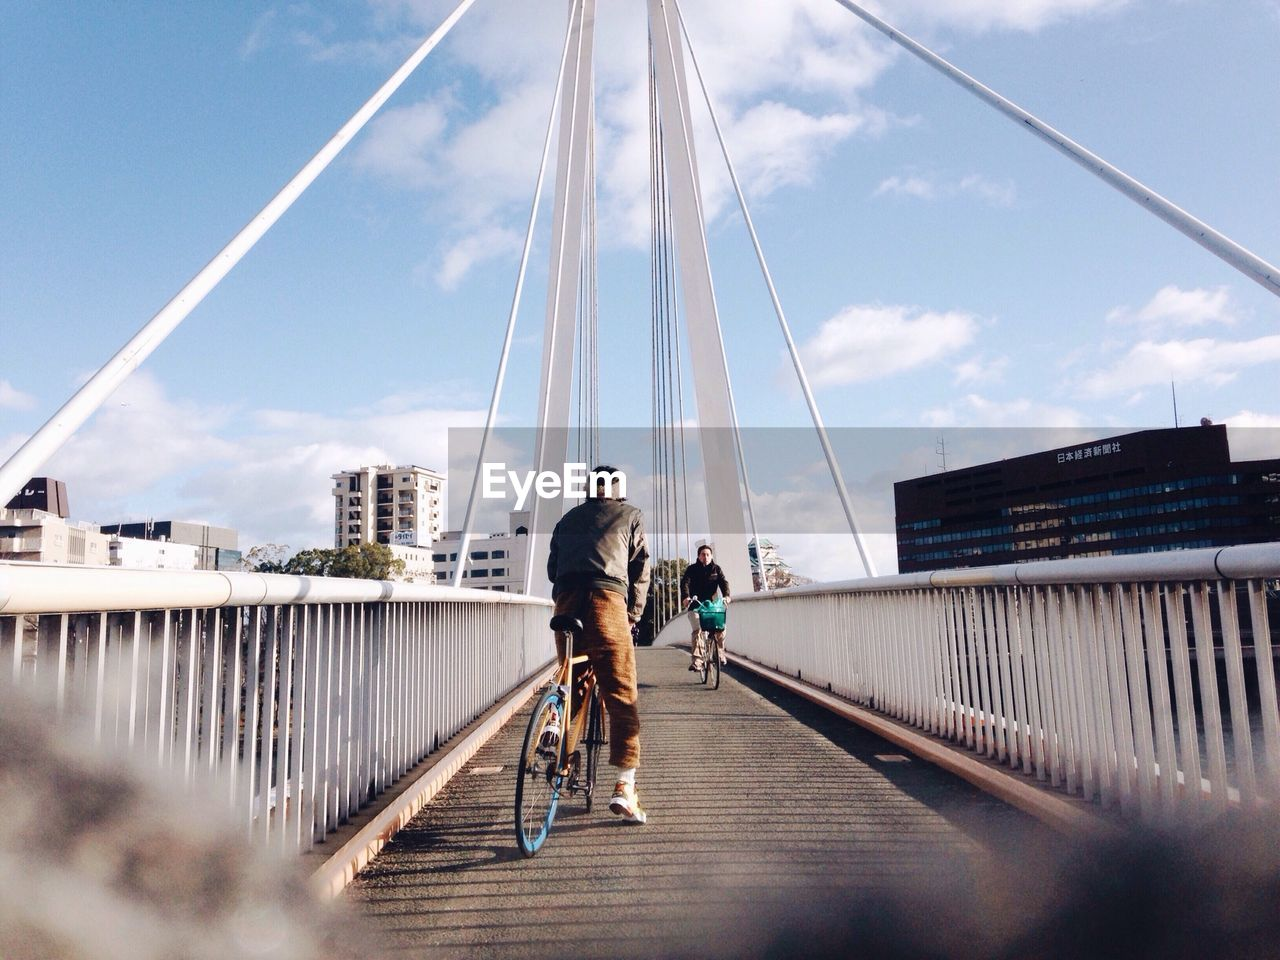 bicycle, sky, transportation, mode of transport, full length, day, cycling, bridge - man made structure, lifestyles, outdoors, togetherness, leisure activity, land vehicle, men, built structure, two people, cycling helmet, real people, city, architecture, footbridge, sports clothing, friendship, nature, people